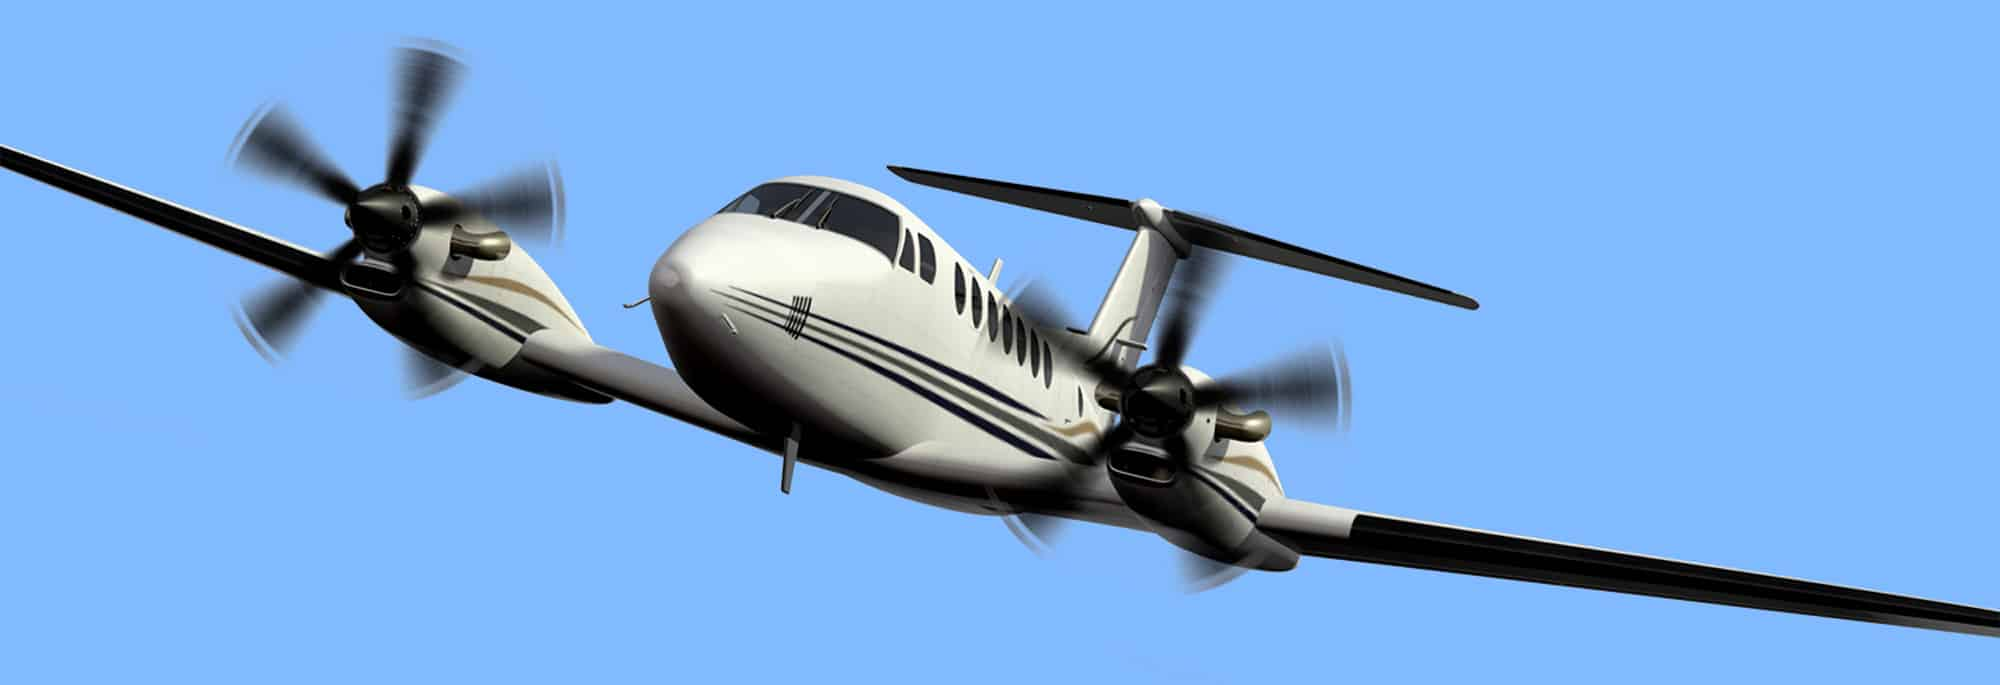 KING AIR 350 XP67A